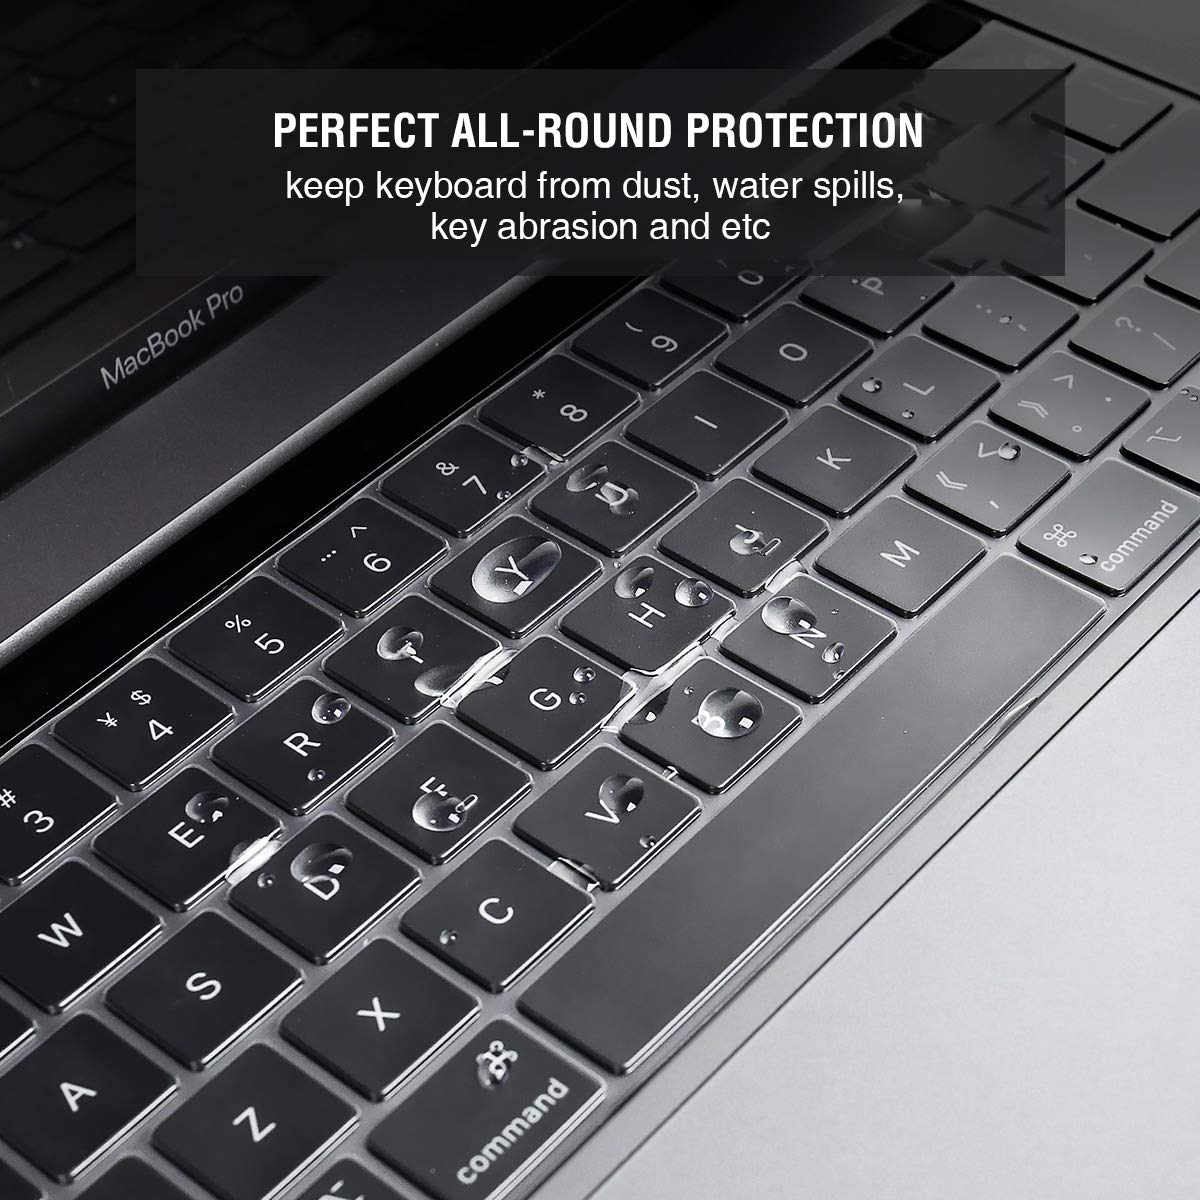 Apple keyboard with touch idle